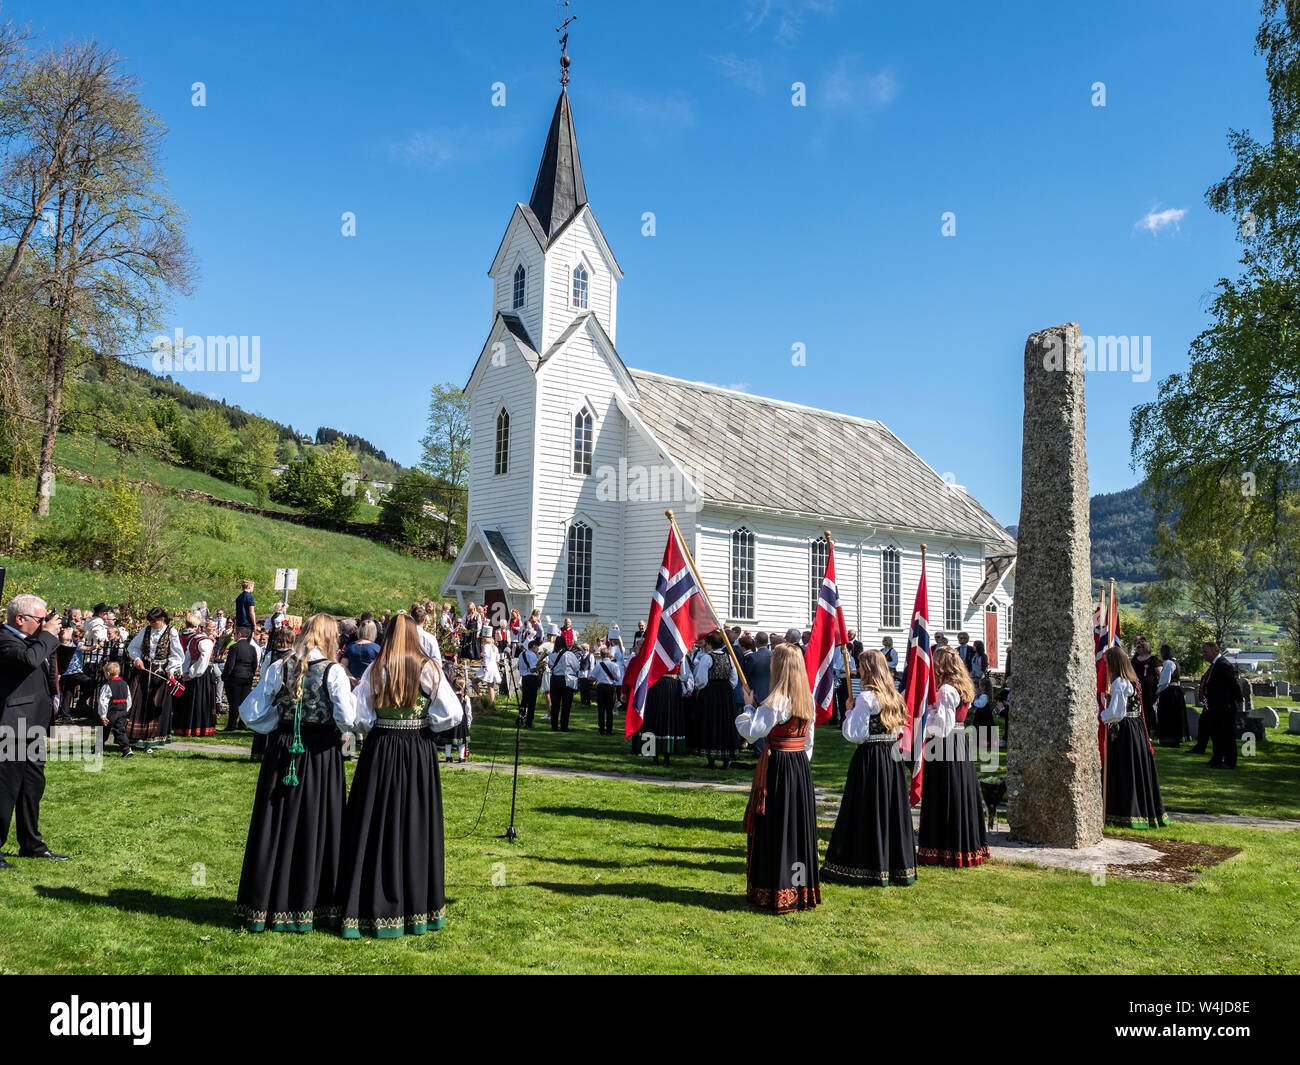 Celebration of the norwegian national day, village Hafslo at lake Hafslovatn, located near the Sognefjord, Norway Stock Photo